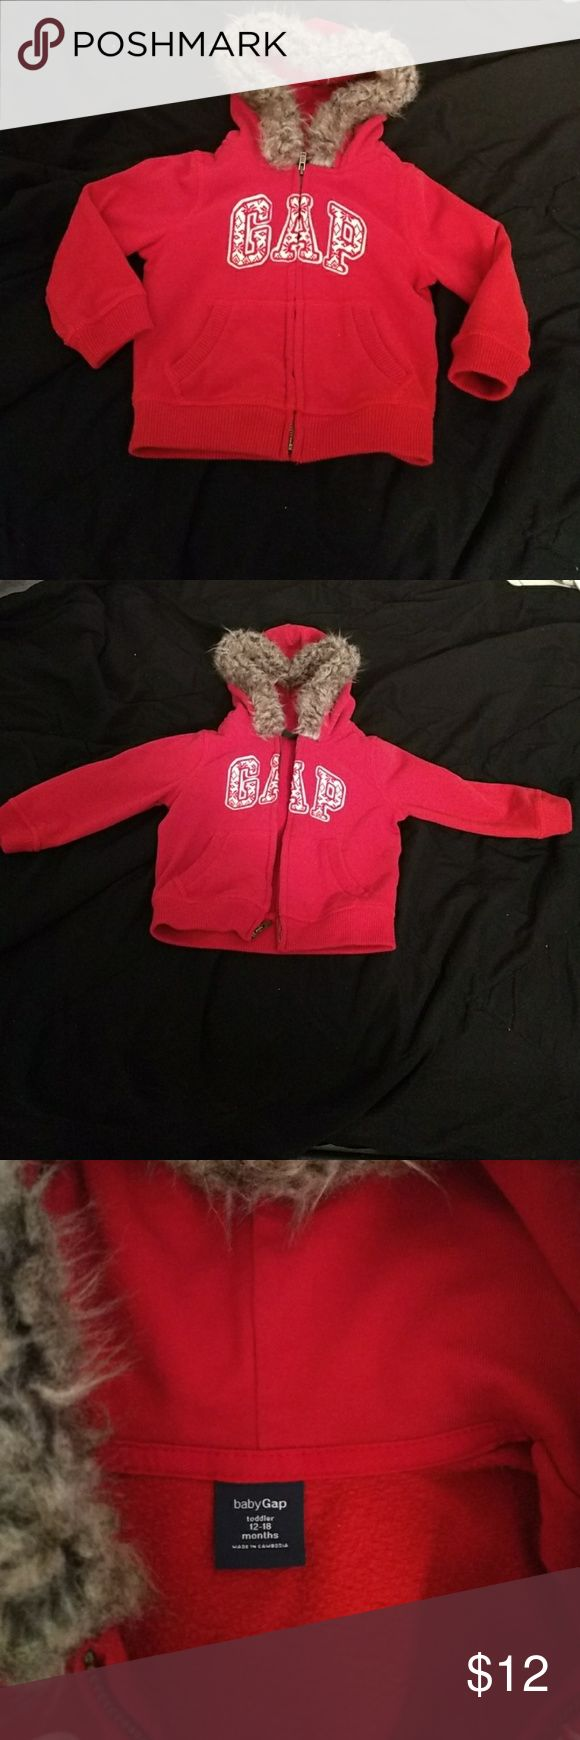 Crib for sale kijiji toronto - Gap Hoodie